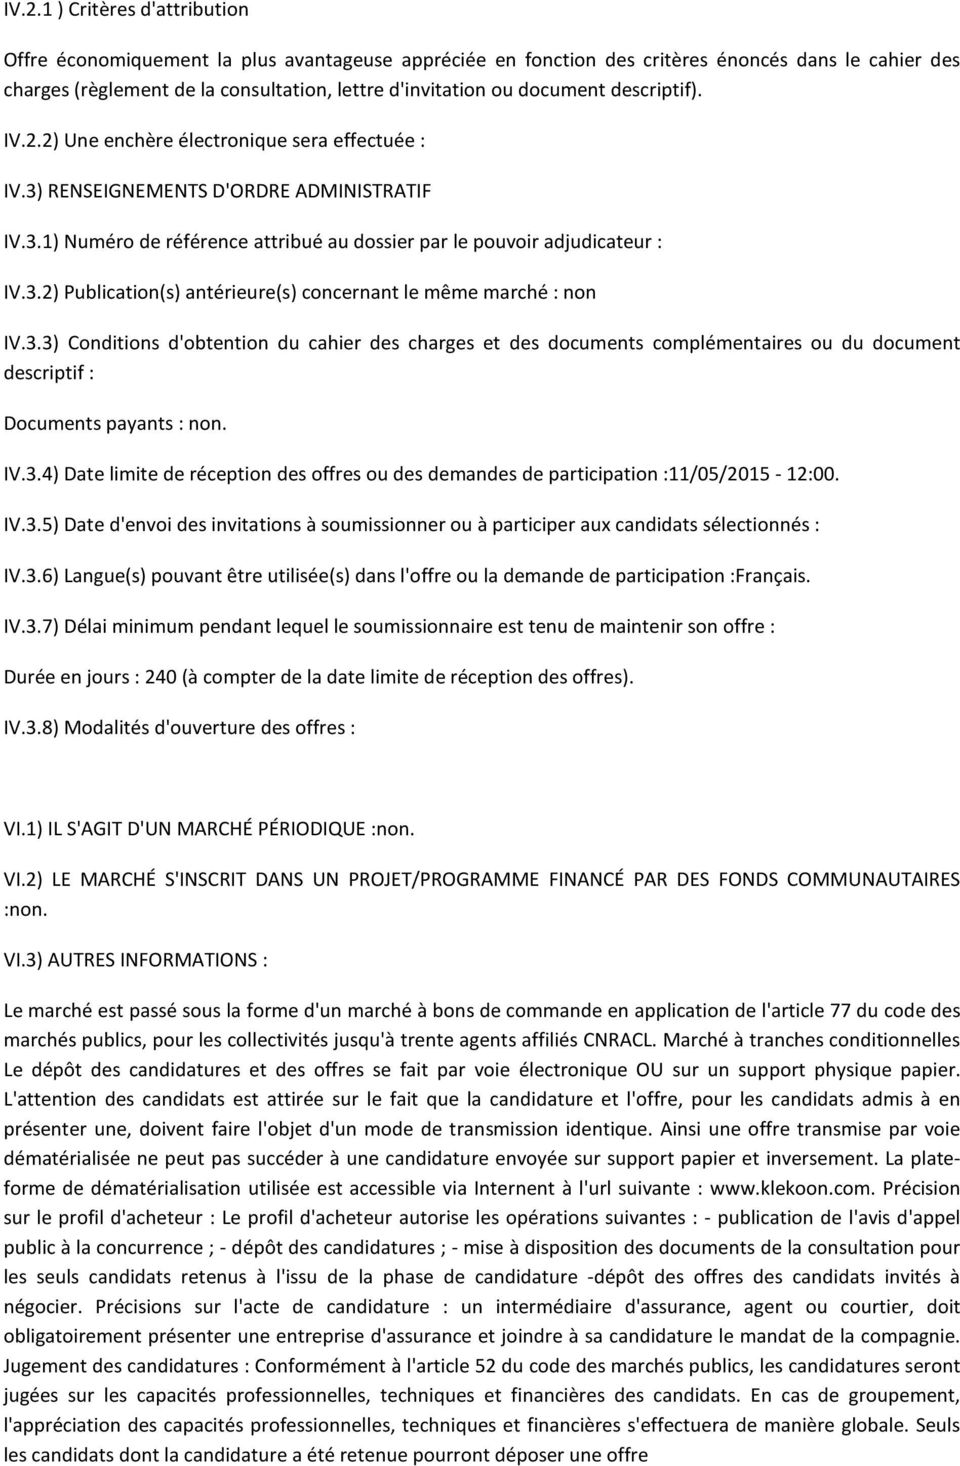 3.3) Conditions d'obtention du cahier des charges et des documents complémentaires ou du document descriptif : Documents payants : non. IV.3.4) Date limite de réception des offres ou des demandes de participation :11/05/2015-12:00.